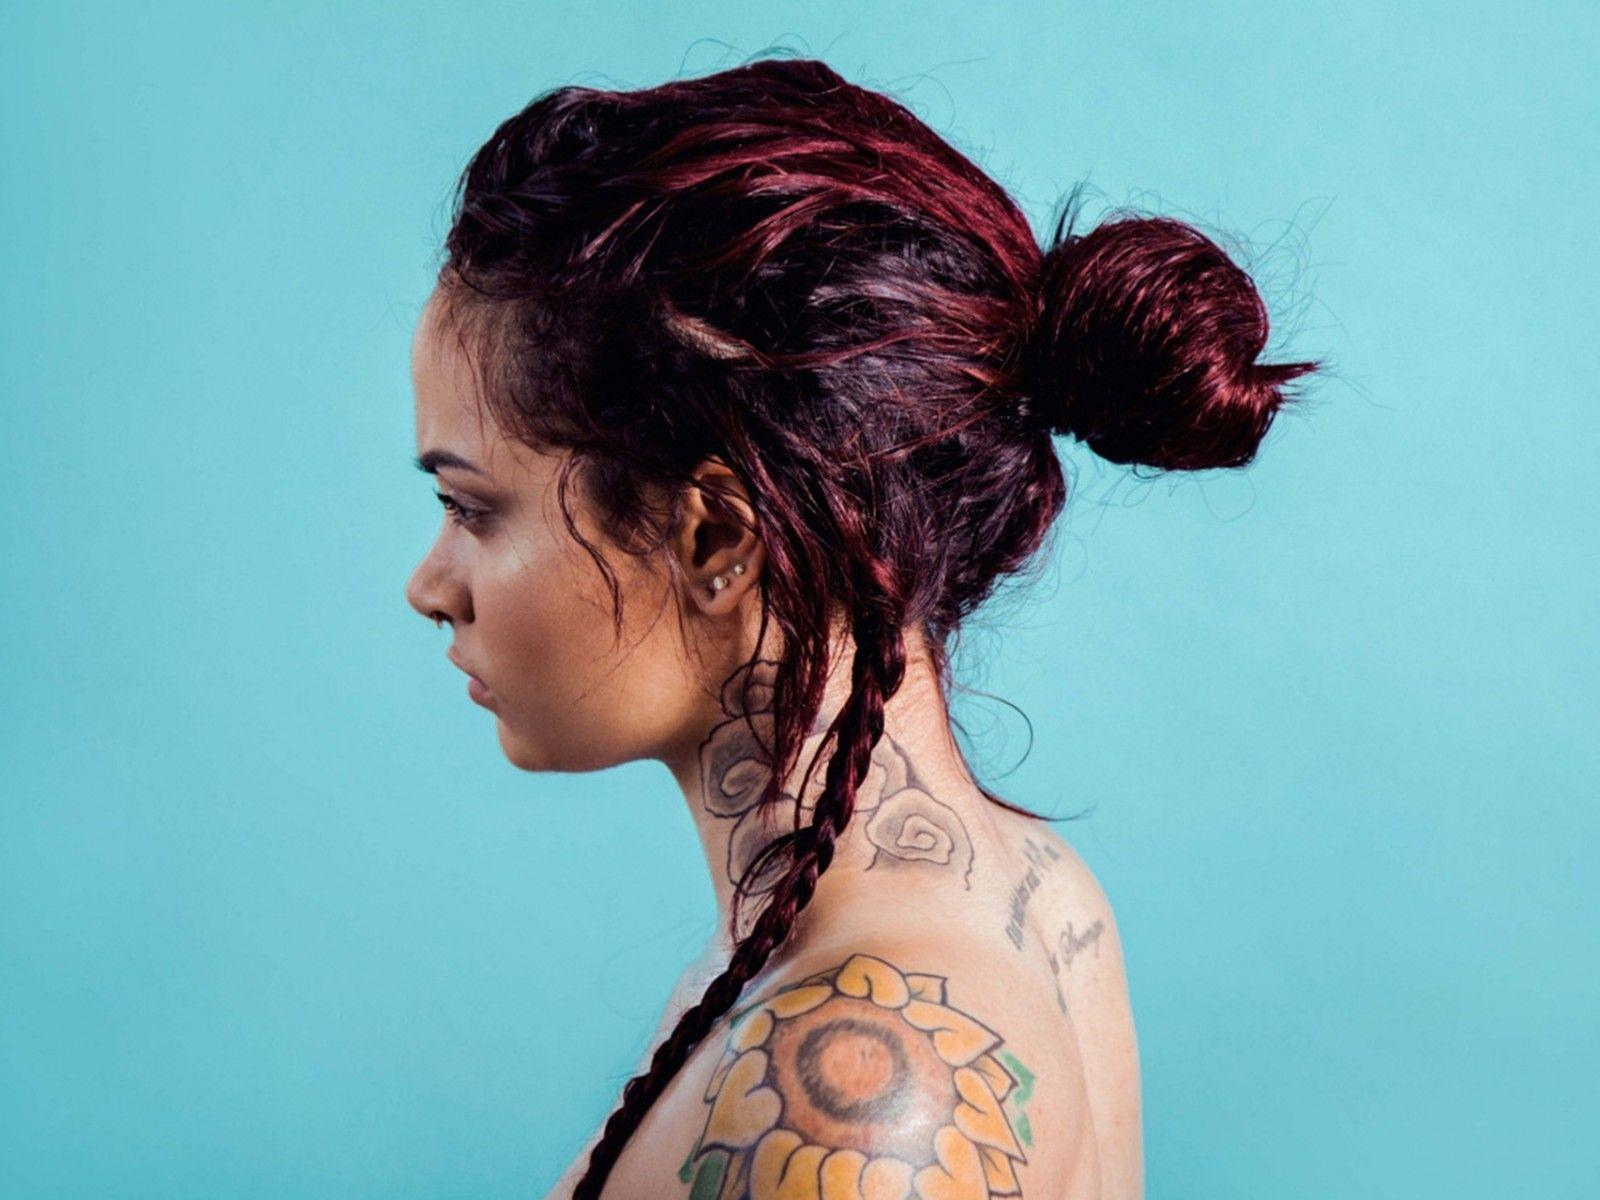 Kehlani Singer Wallpaper 14683 - Baltana